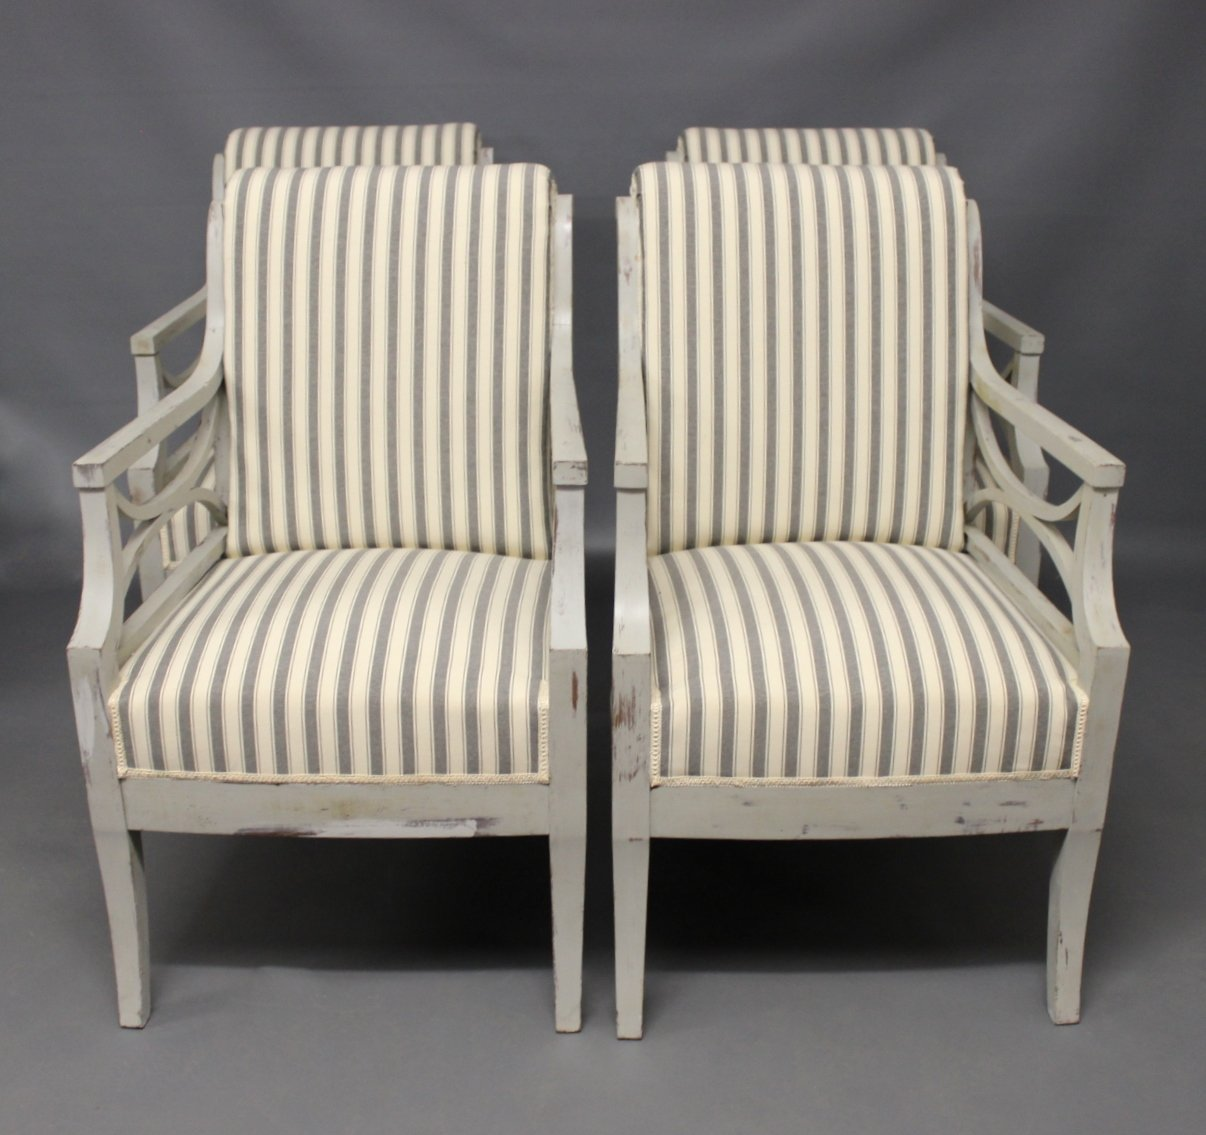 antique gustavian style armchairs set of 4 - Gustavian Style Furniture